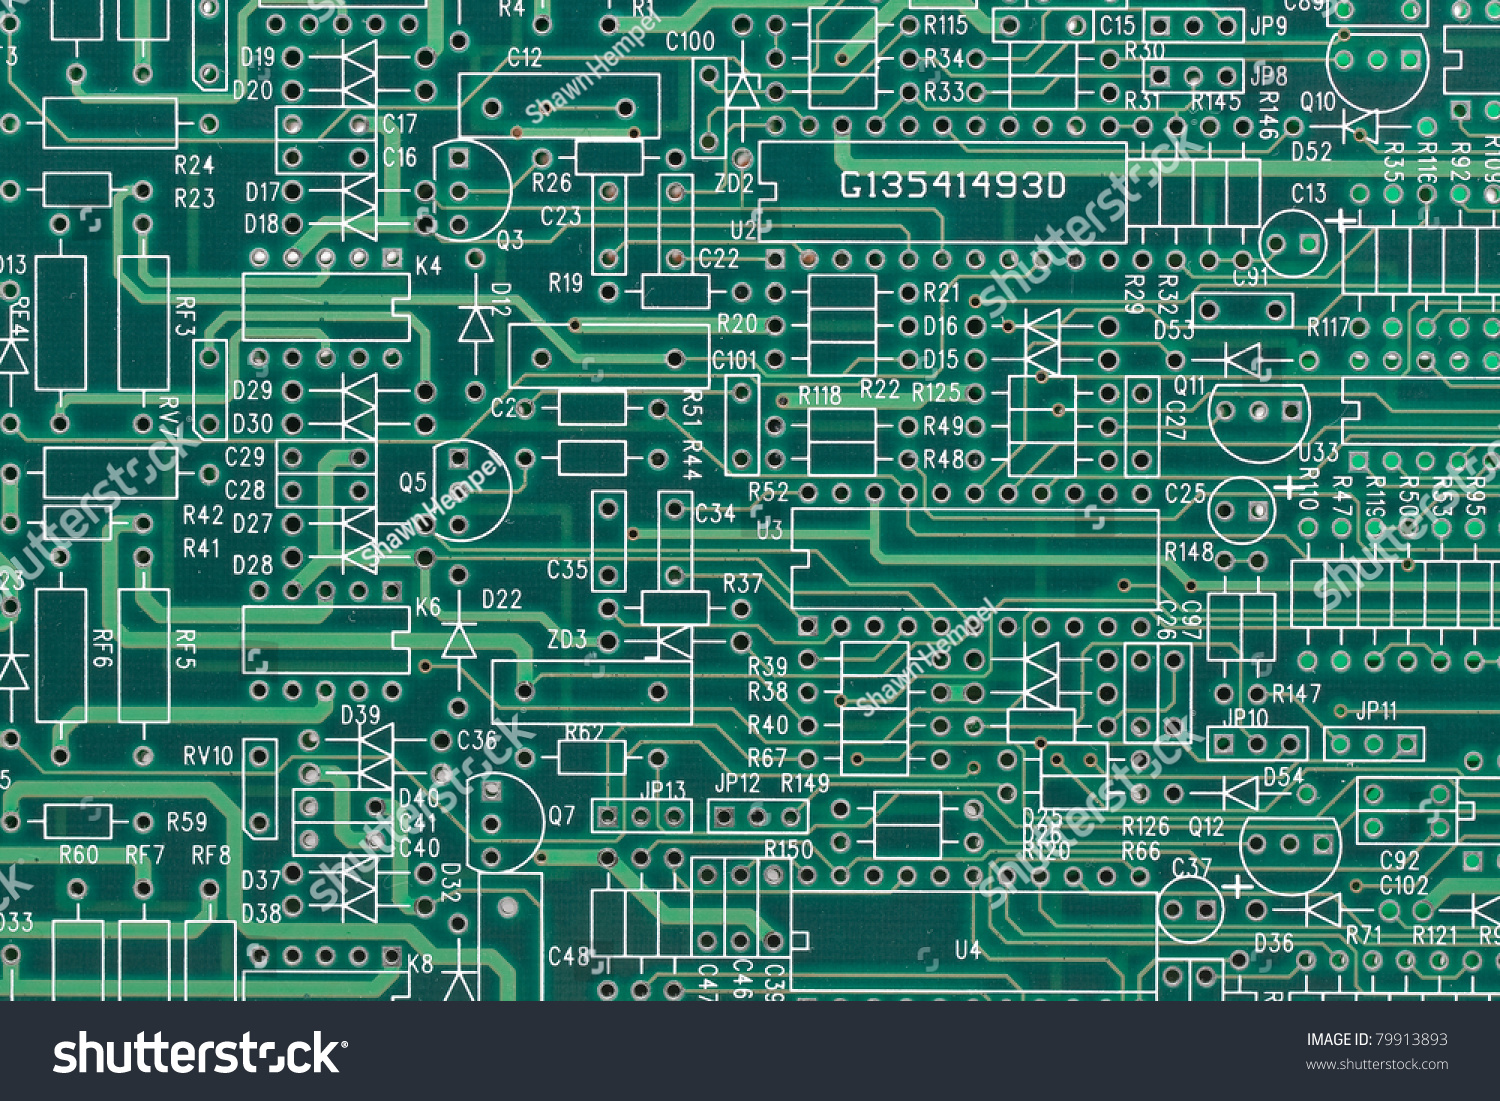 empty electric circuit layout technology network stock photo (editempty electric circuit layout technology or network background